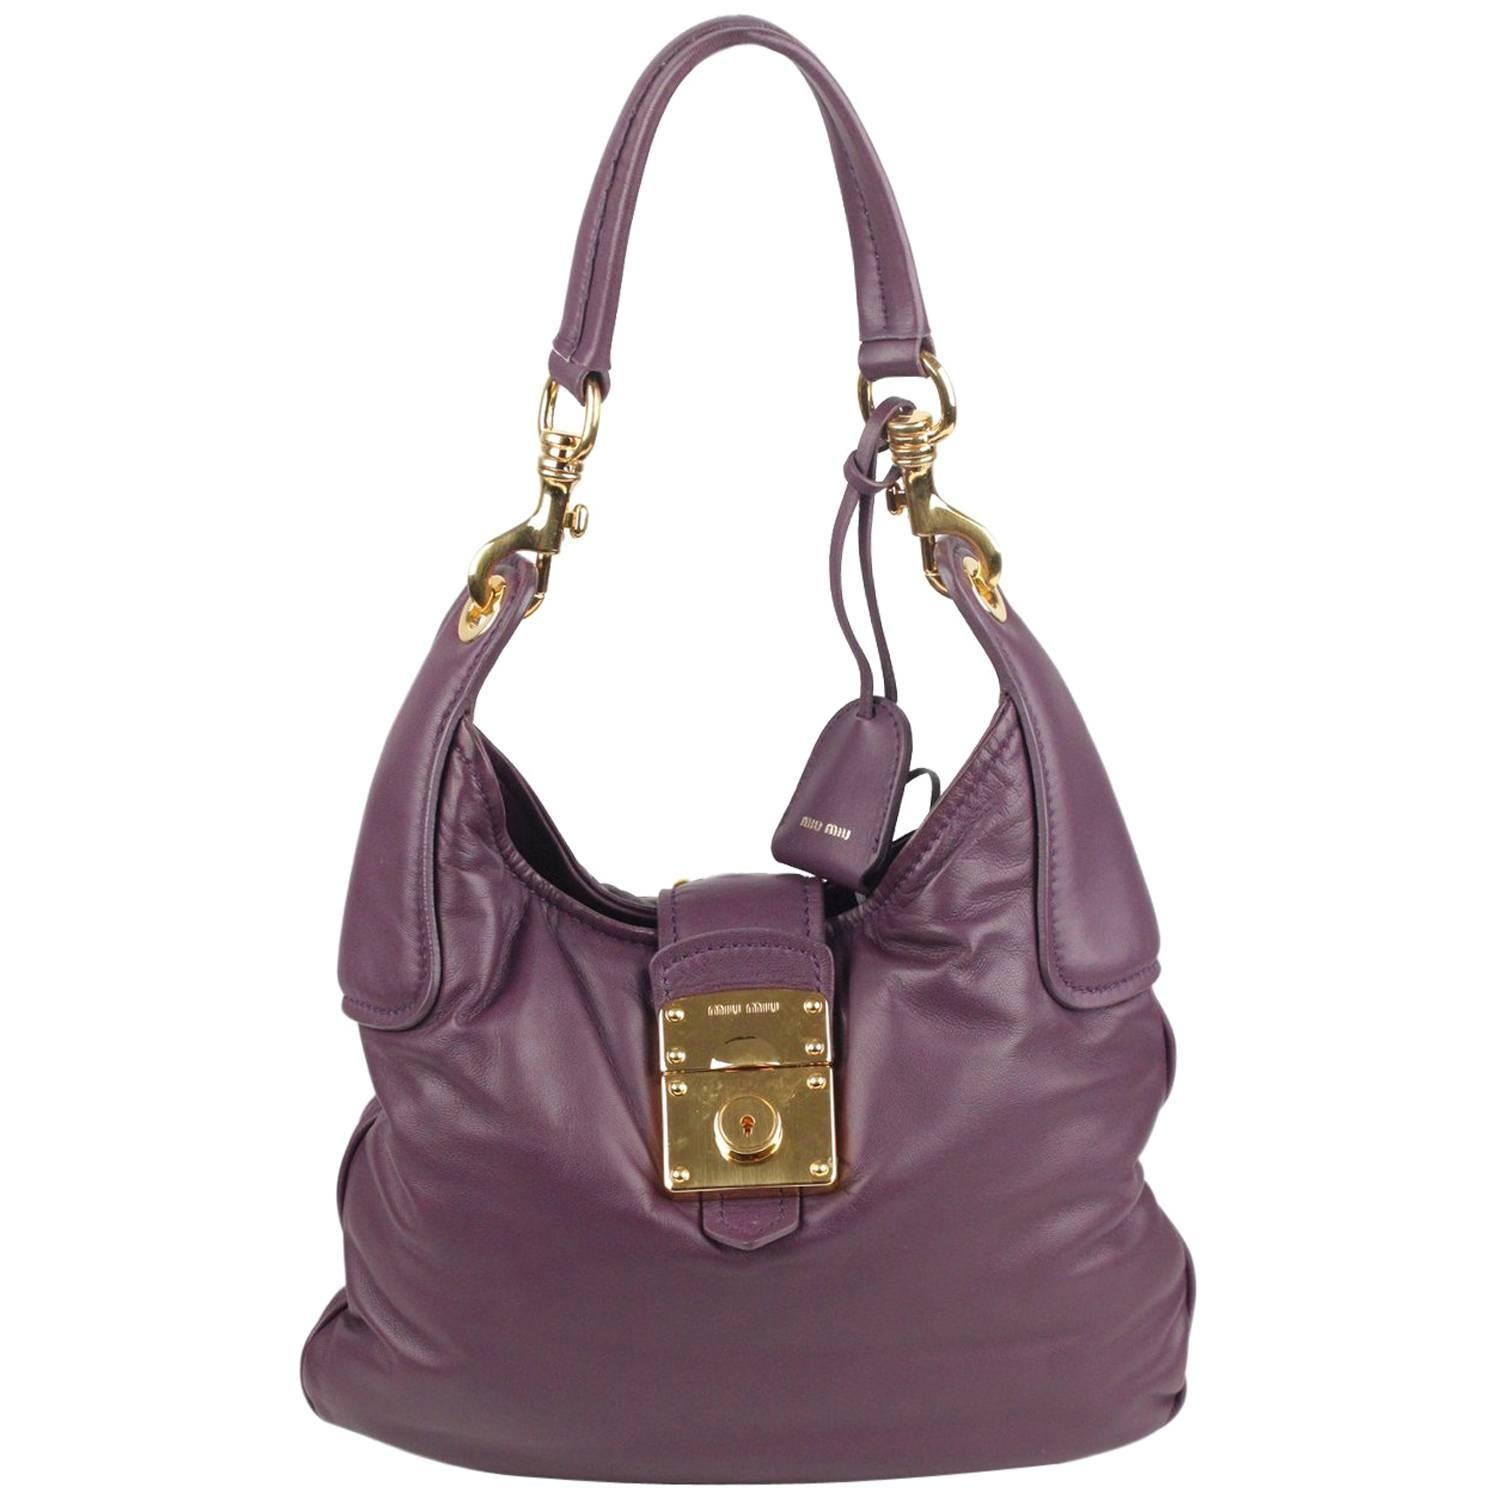 958daaf603 Chloe Purple Leather Triple Chain Milton Hobo Shoulder Bag For Sale at  1stdibs